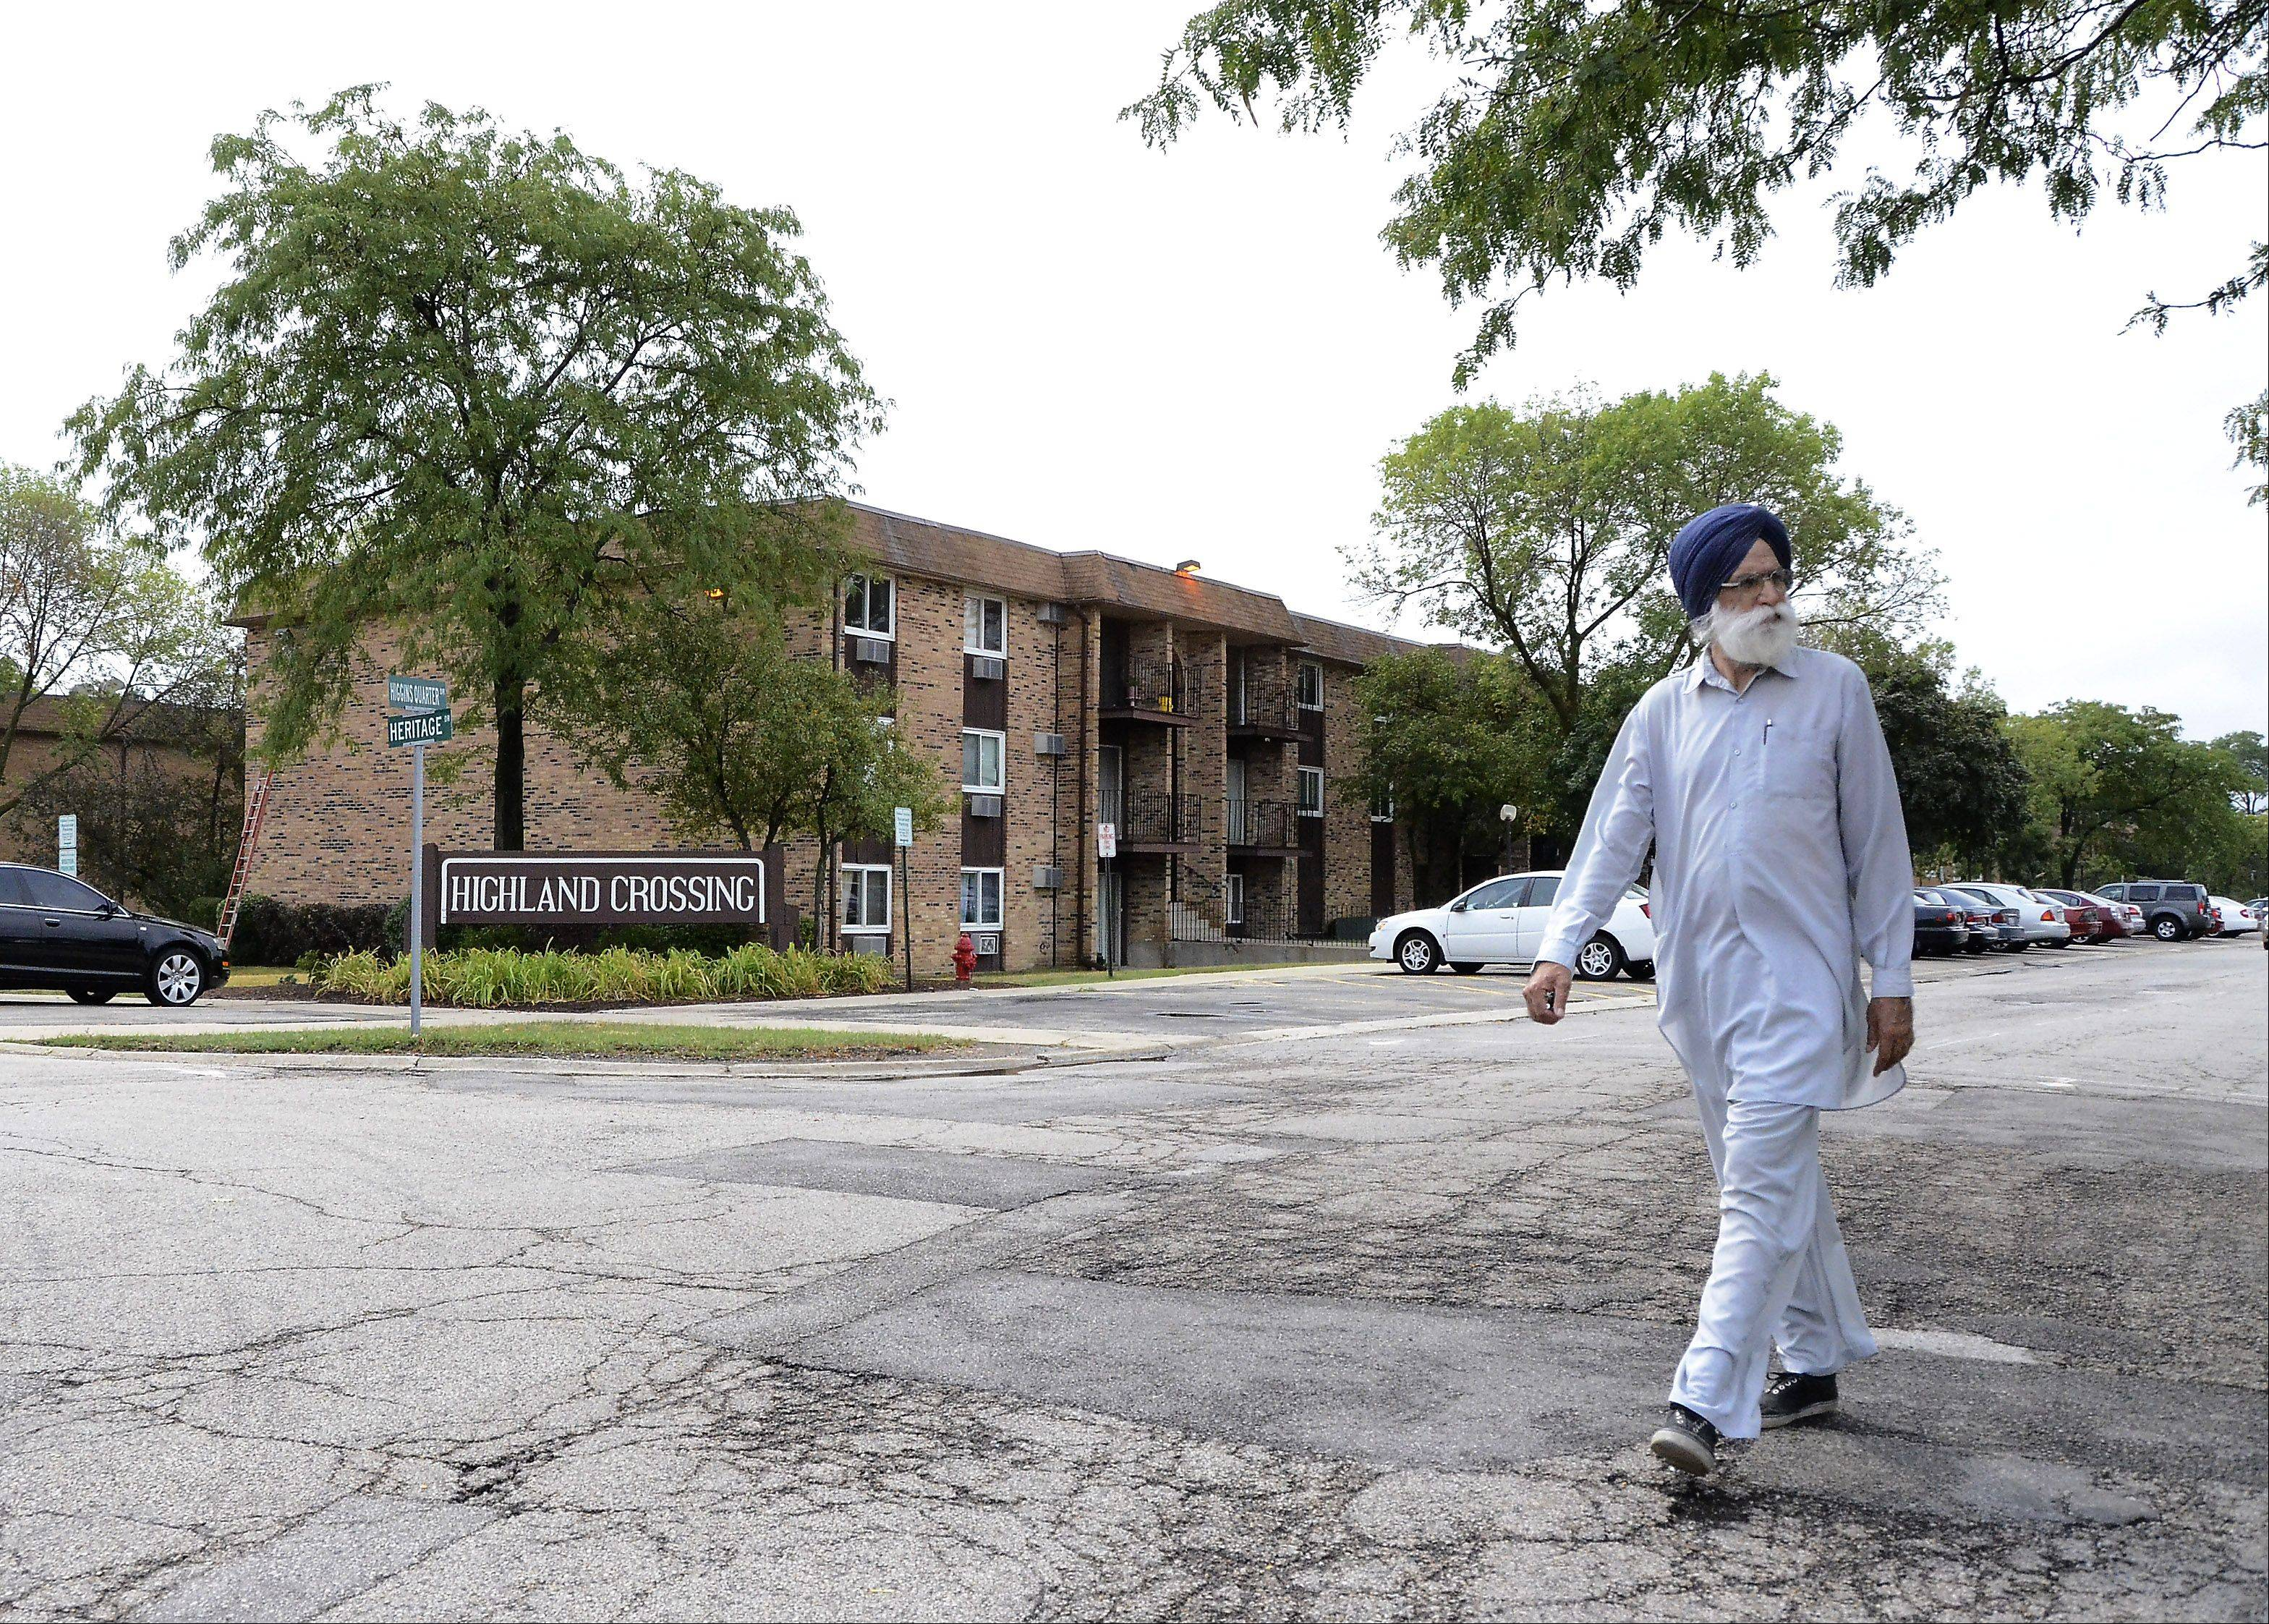 Residents at the Highland Crossing Condominiums in Hoffman Estates are complaining about the way police respond to crime in their neighborhood. Police and village officials will meet with the residents Thursday night.